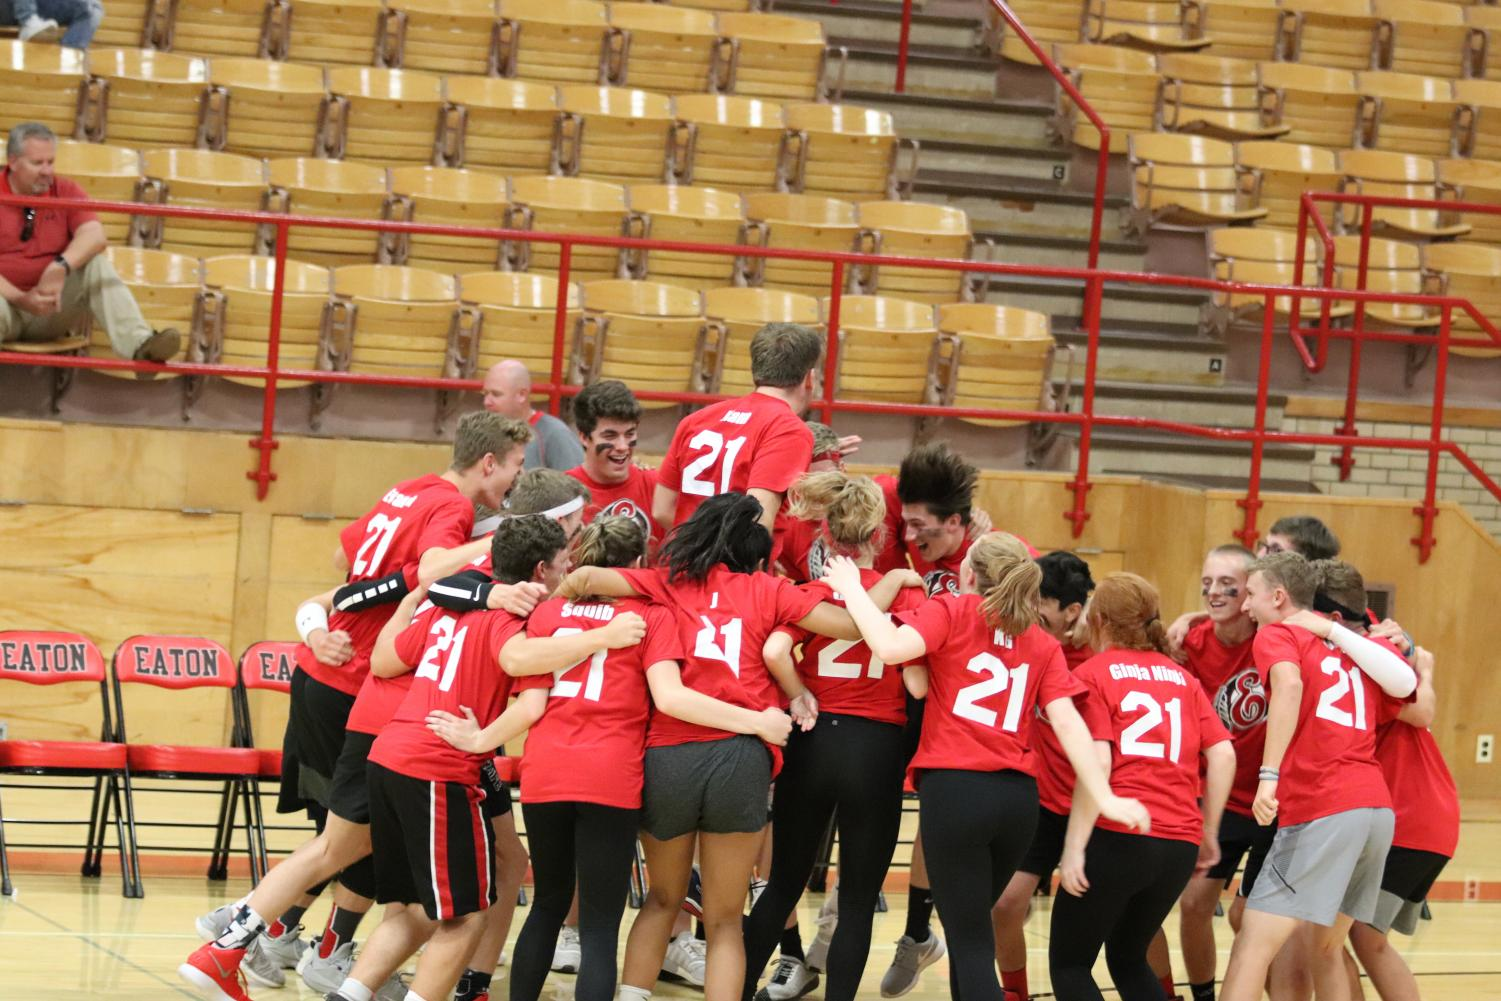 Junior boys get ready for powder puff volleyball game